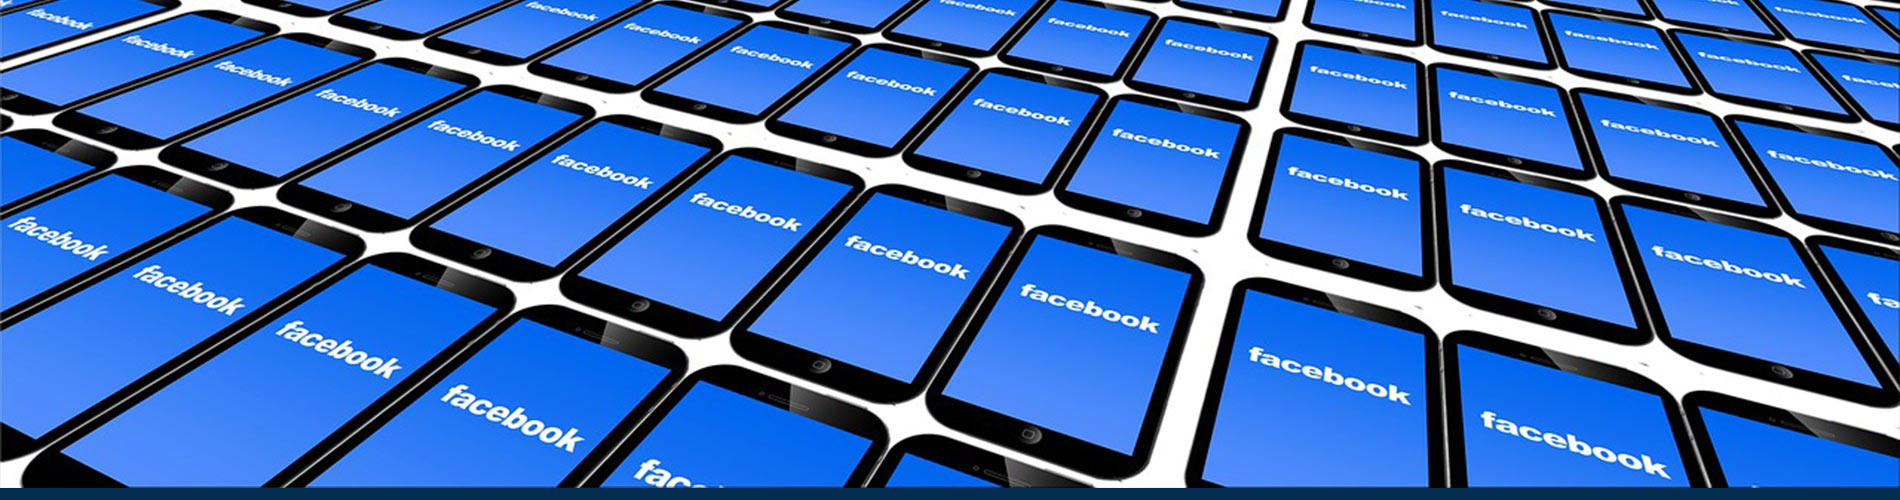 Facebook Training from Kompass Media Beginner Level Intermediate Level and Advanced Training Course online or in person for Group Training or One to One